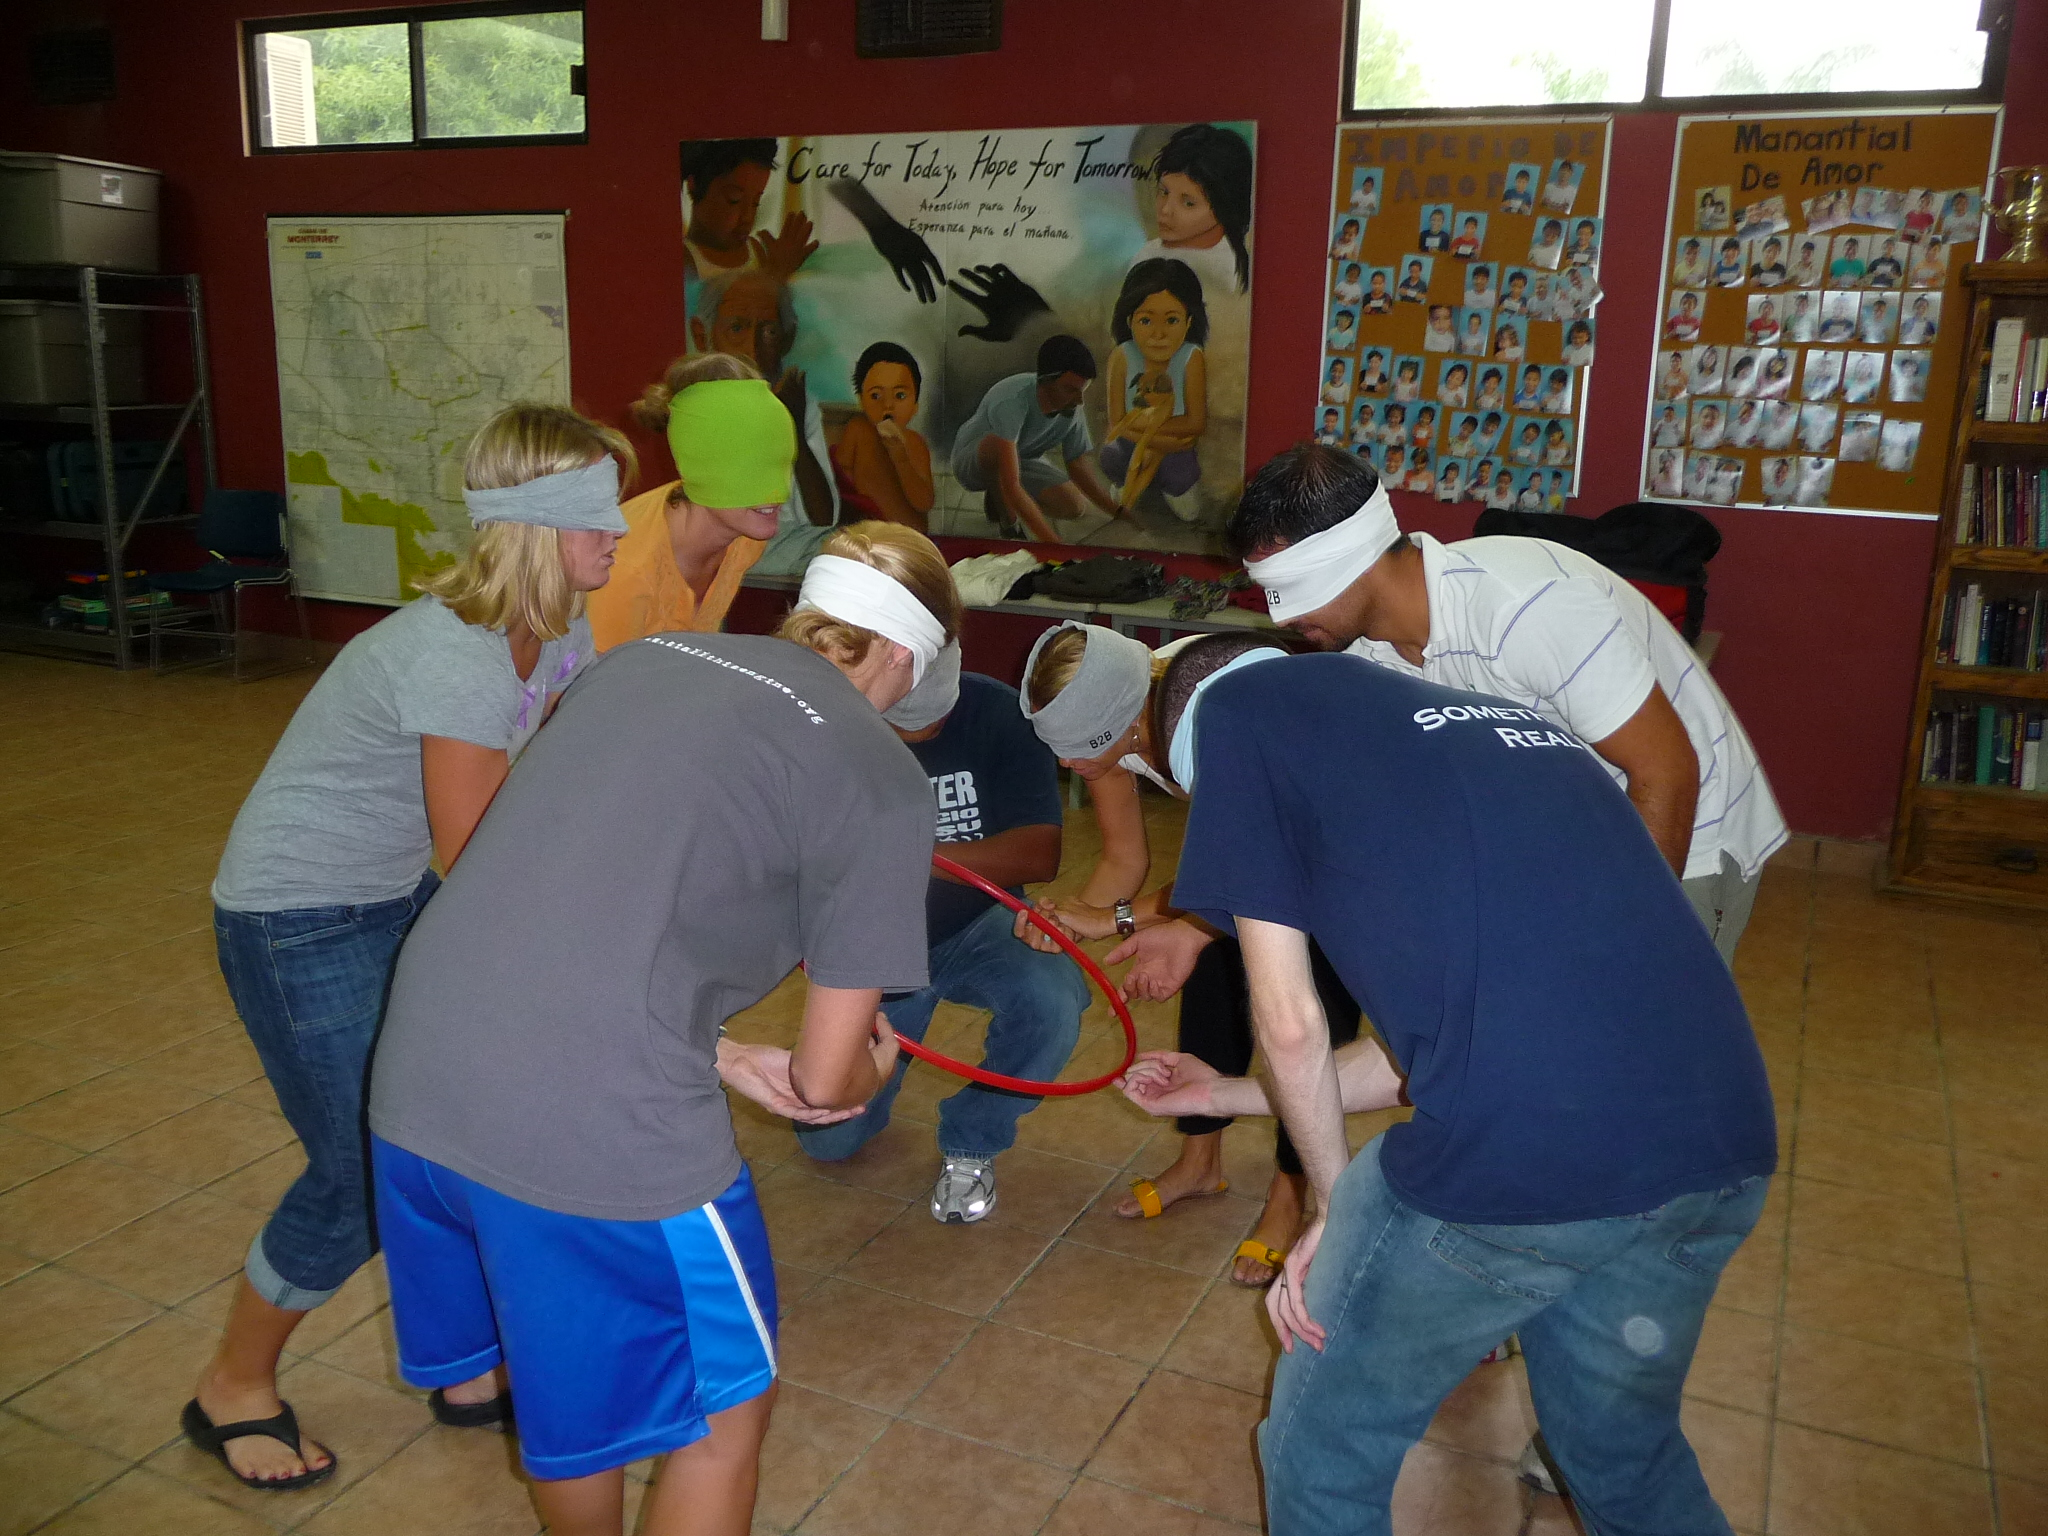 The staff split into small groups for a series of team-building activities